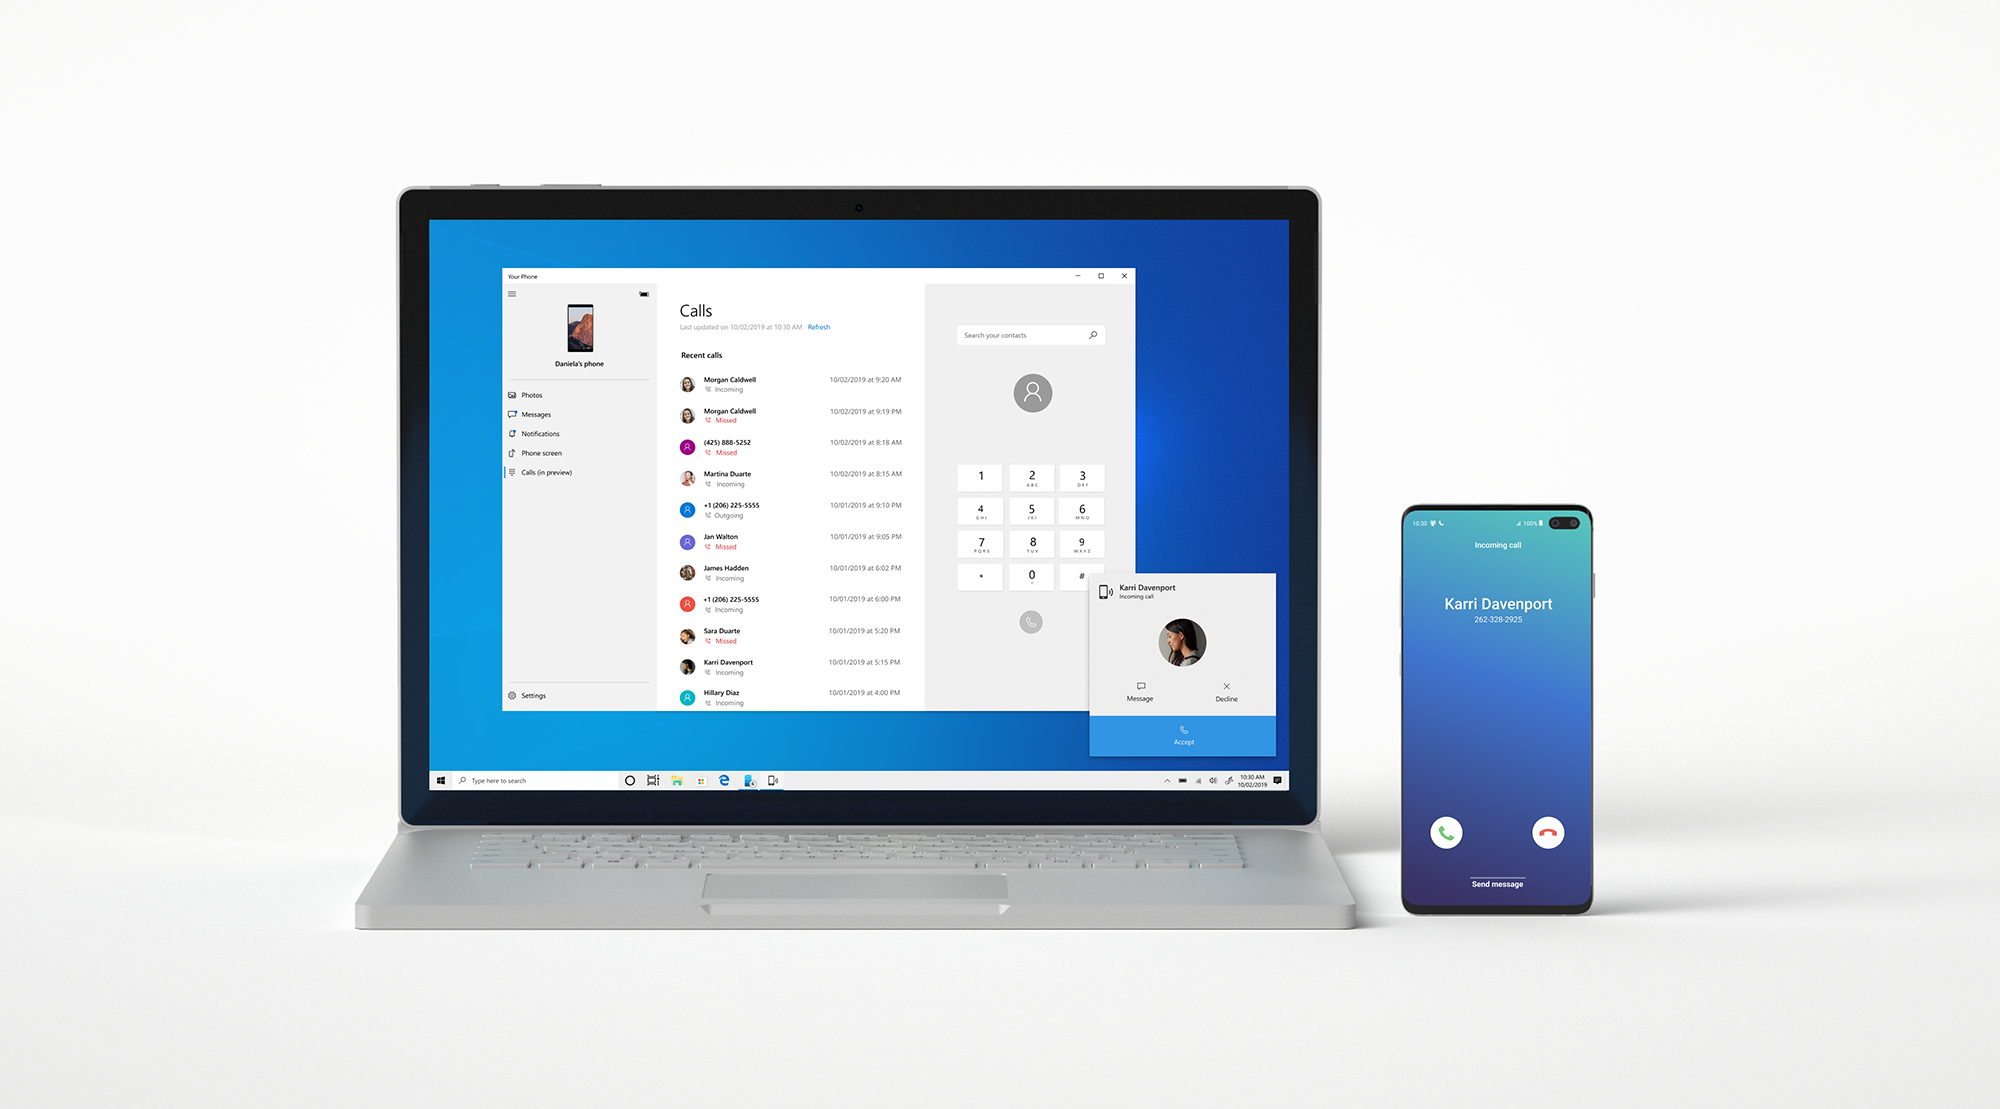 Microsoft is bringing Android apps to your Windows 11 devices - CNET